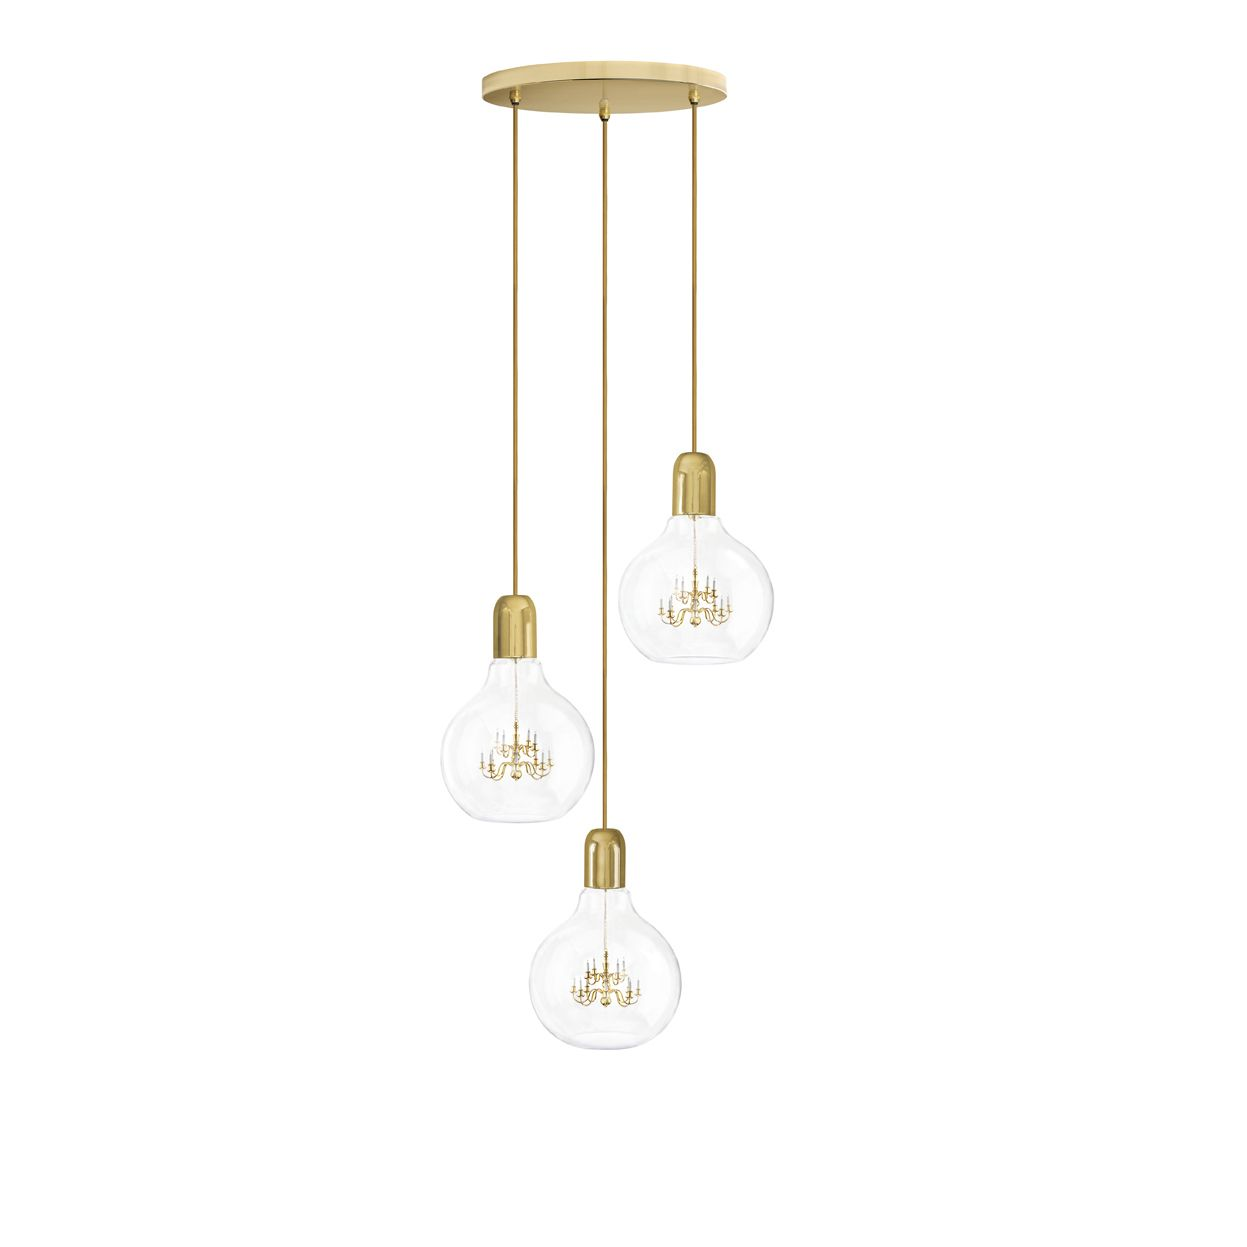 Looking for a mineheart king edison trio chandelier shop online at king edison trio 1 3 arubaitofo Images